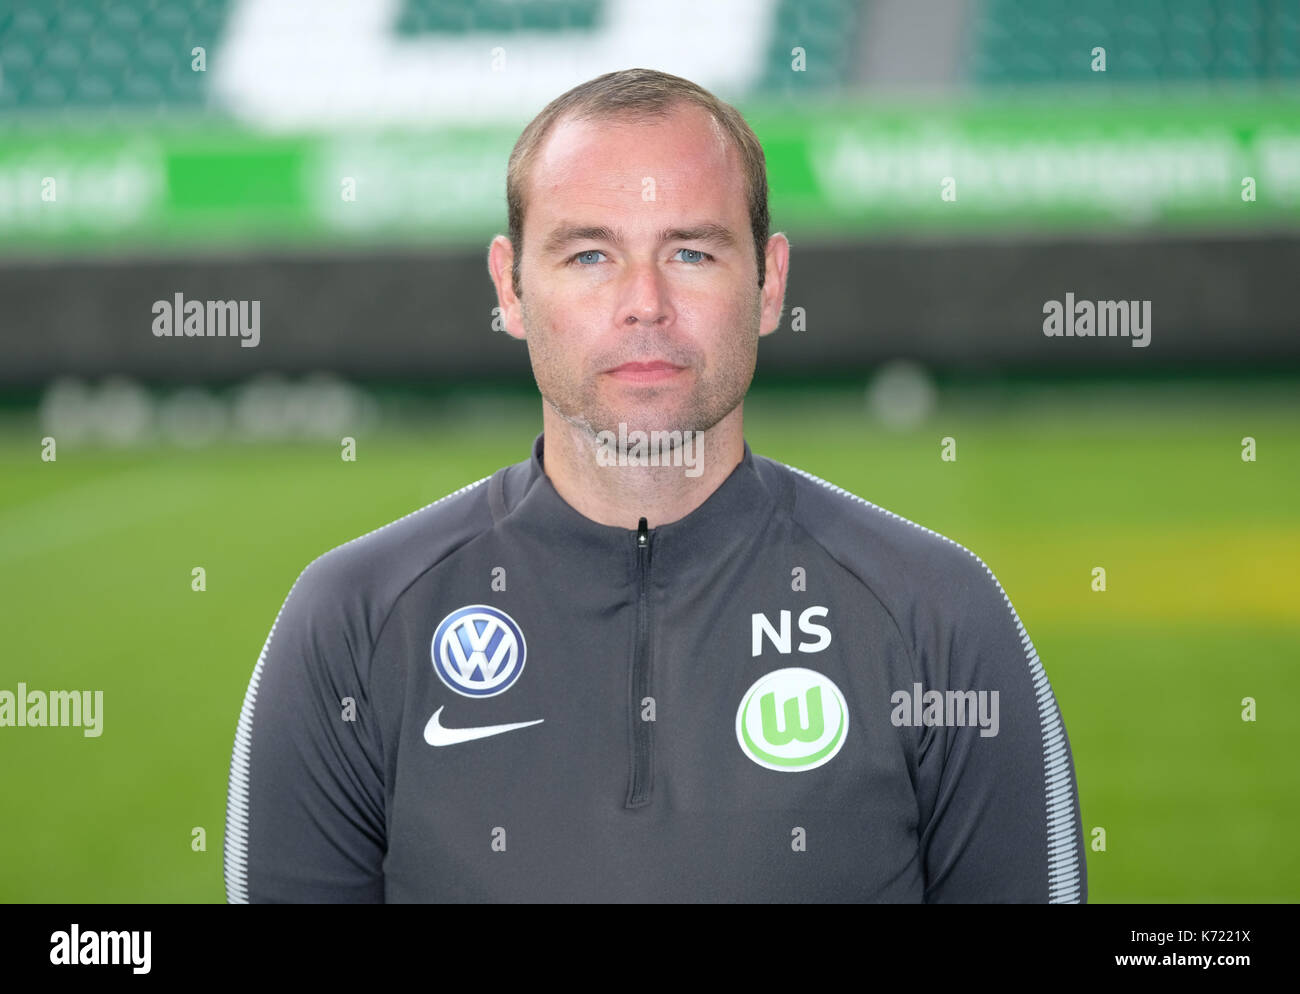 Wolfsburg, Germany. 13th Sep, 2017. German Bundesliga, official photocall VfL Wolfsburg for season 2017/18 in Wolfsburg, Germany: kitman Nils Scholz. | usage worldwide Credit: dpa/Alamy Live News - Stock Image